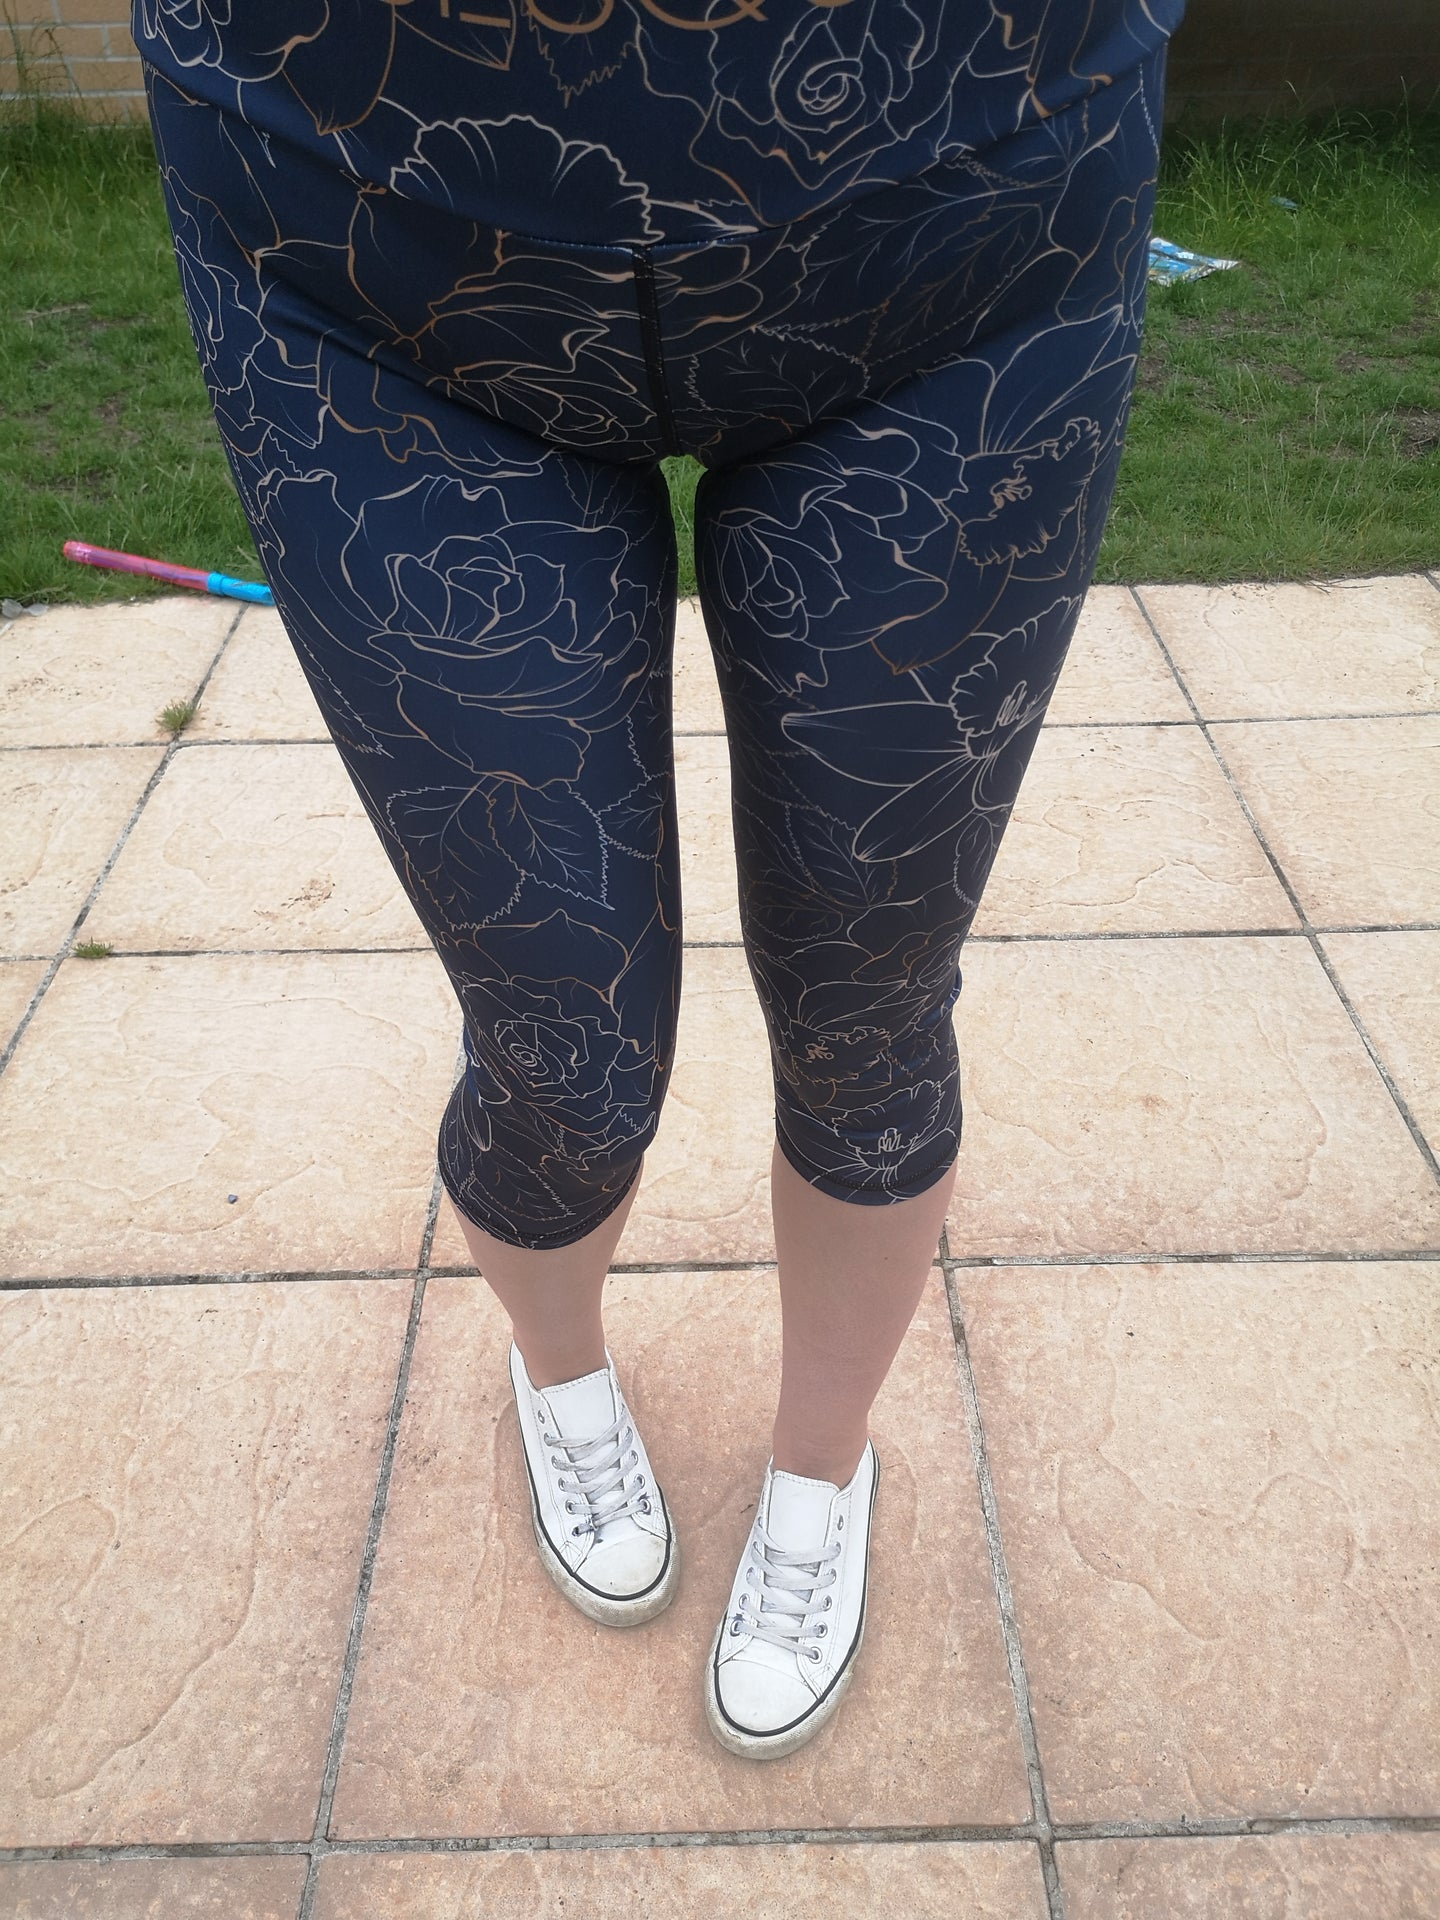 Luesque VERSION 3 Regal Roses Capri Length Leggings